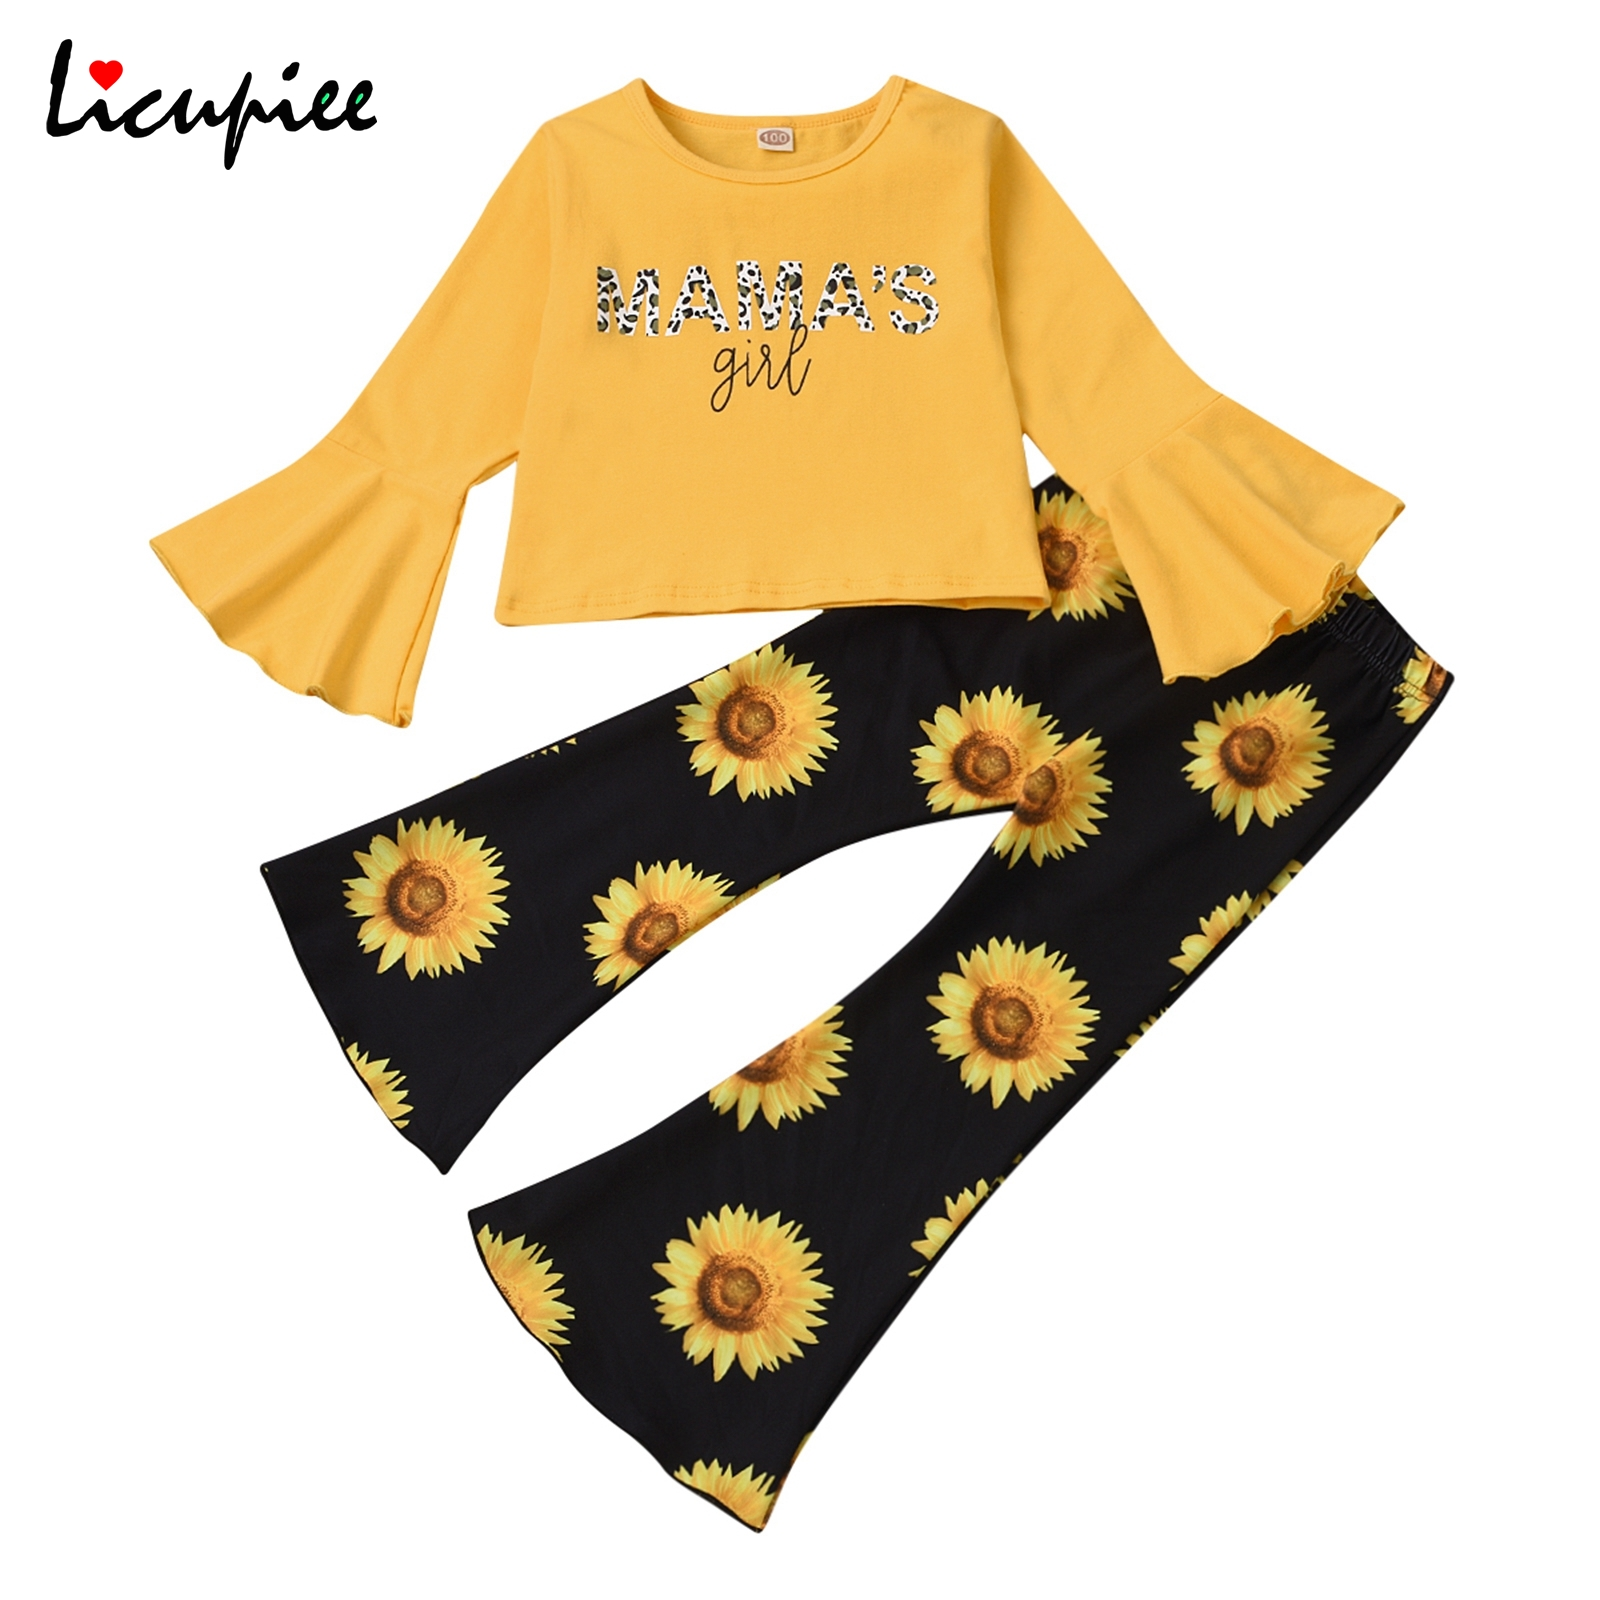 2-6 Years Girlu2019s Sunflower Printed 2pcs Clothes Set, Long Flared Sleeve T-shirt Tops with Printed Bell-bottoms